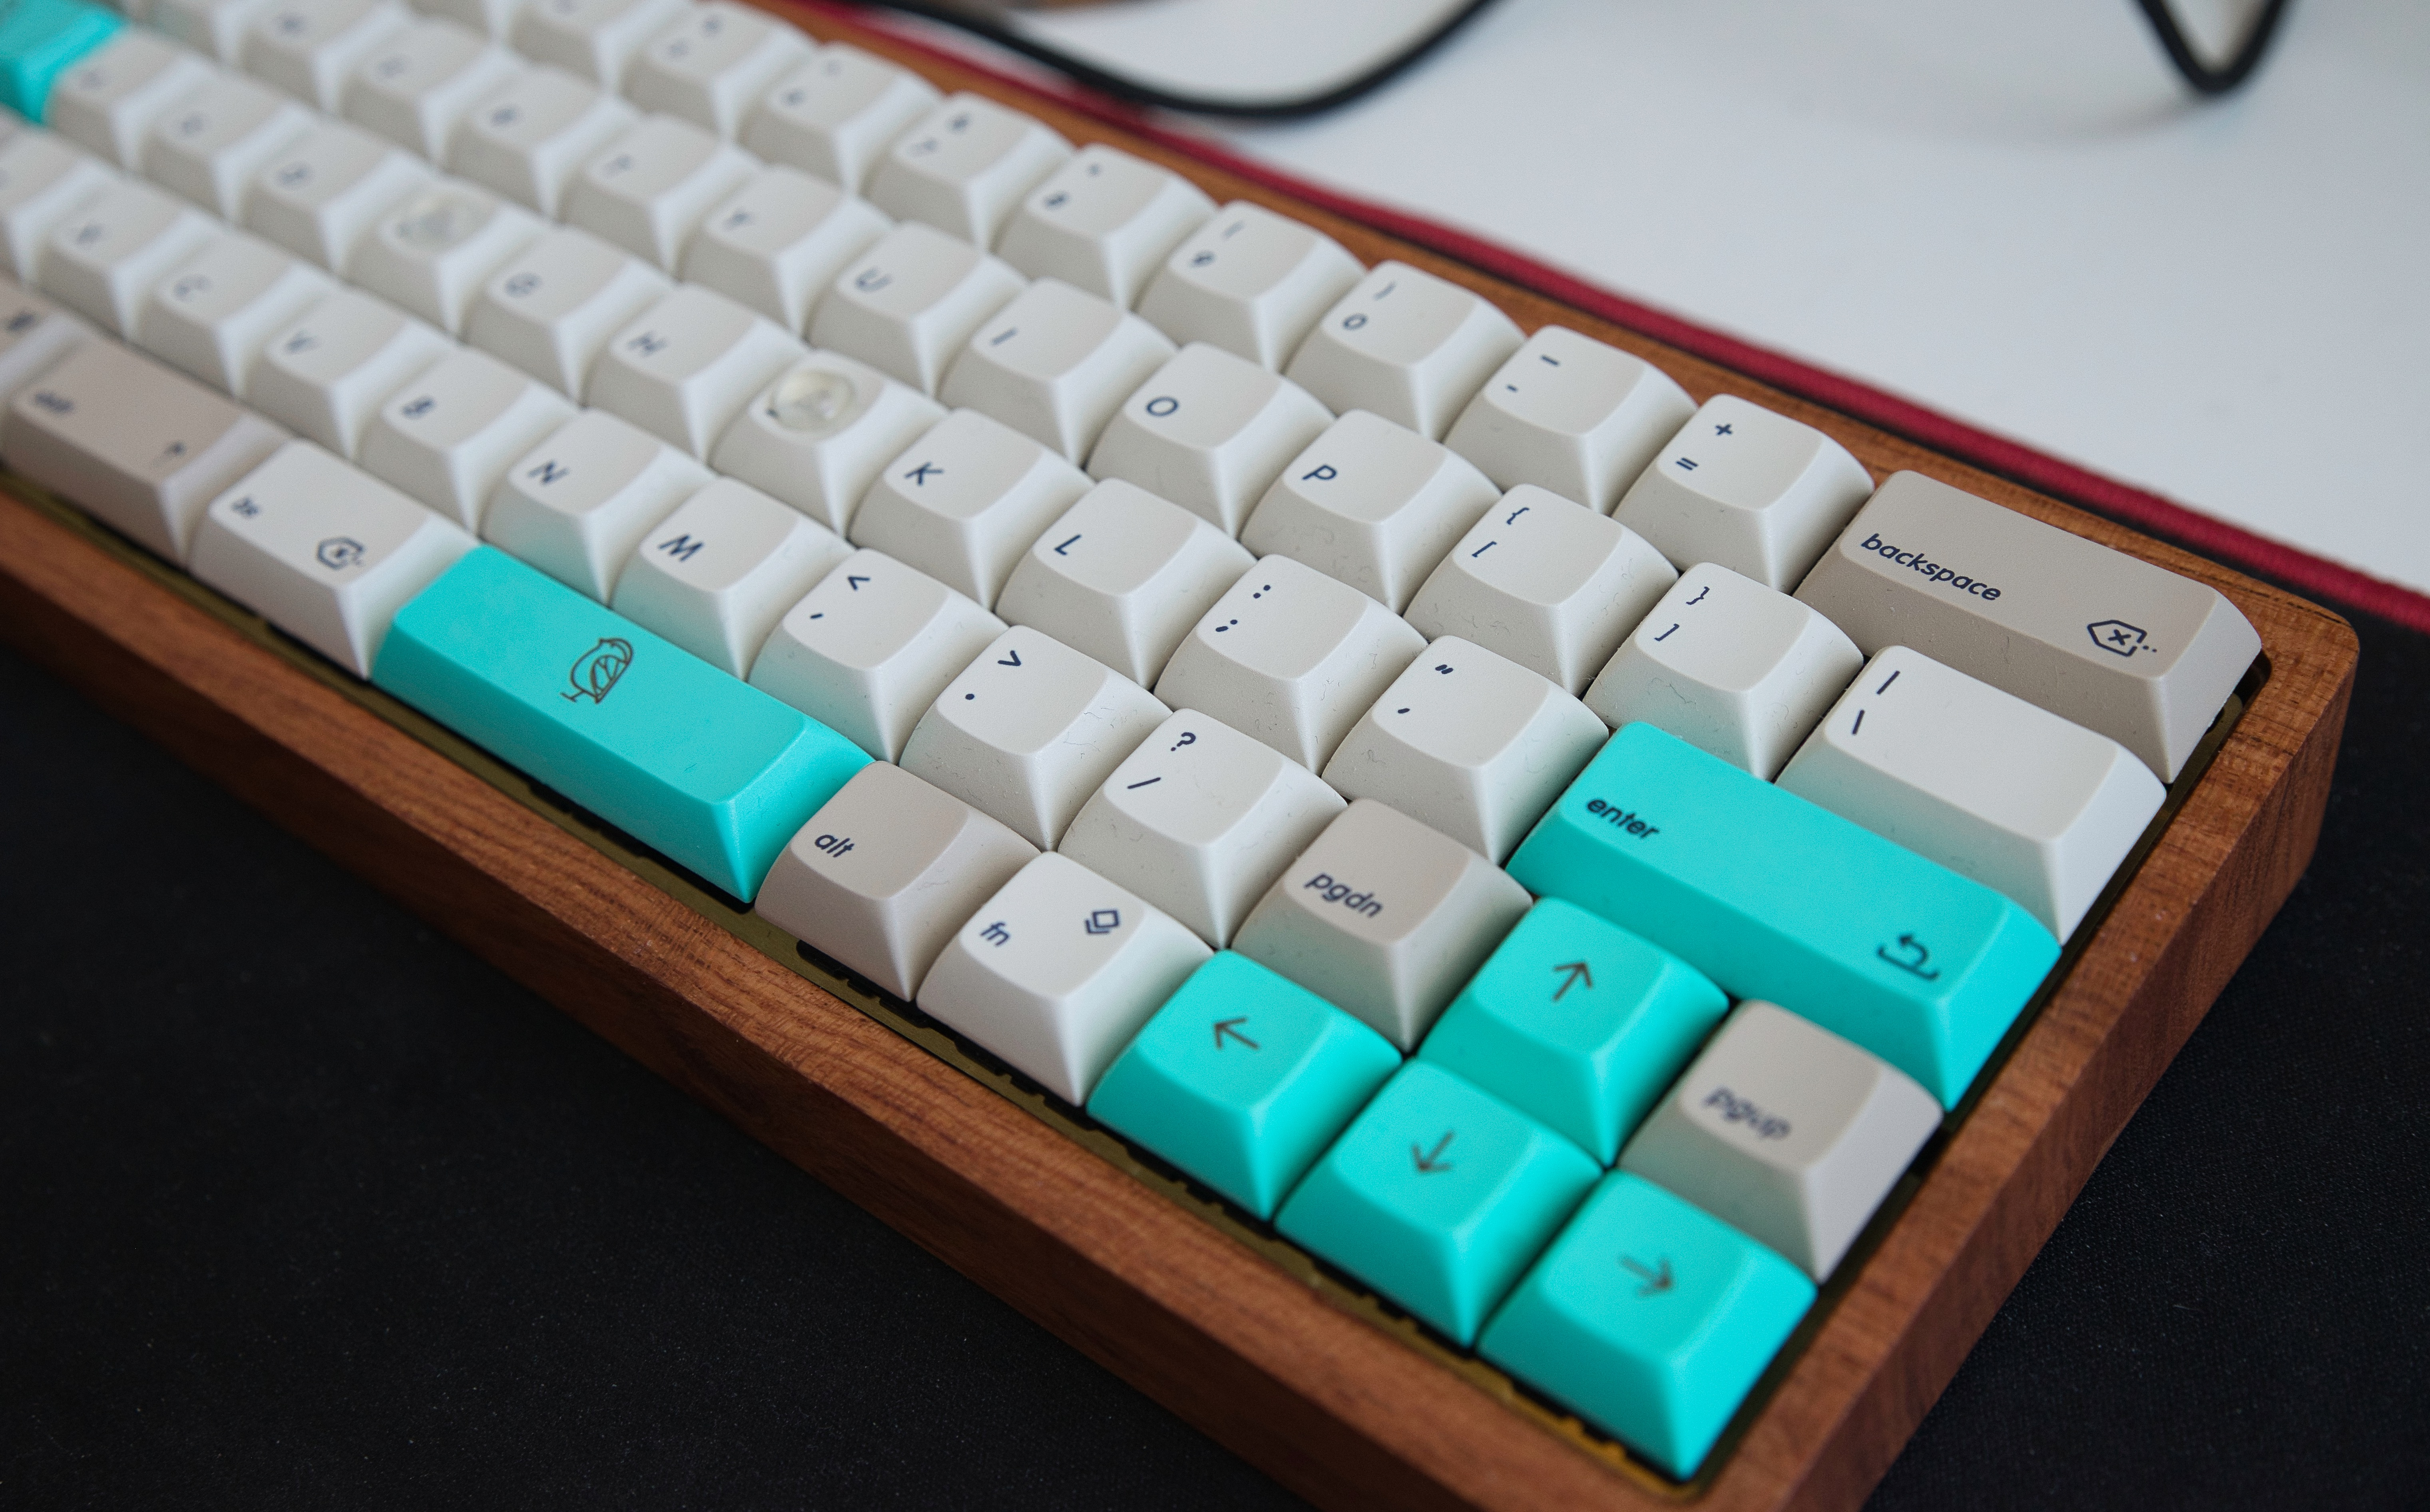 My custom built keyboard with a US layout